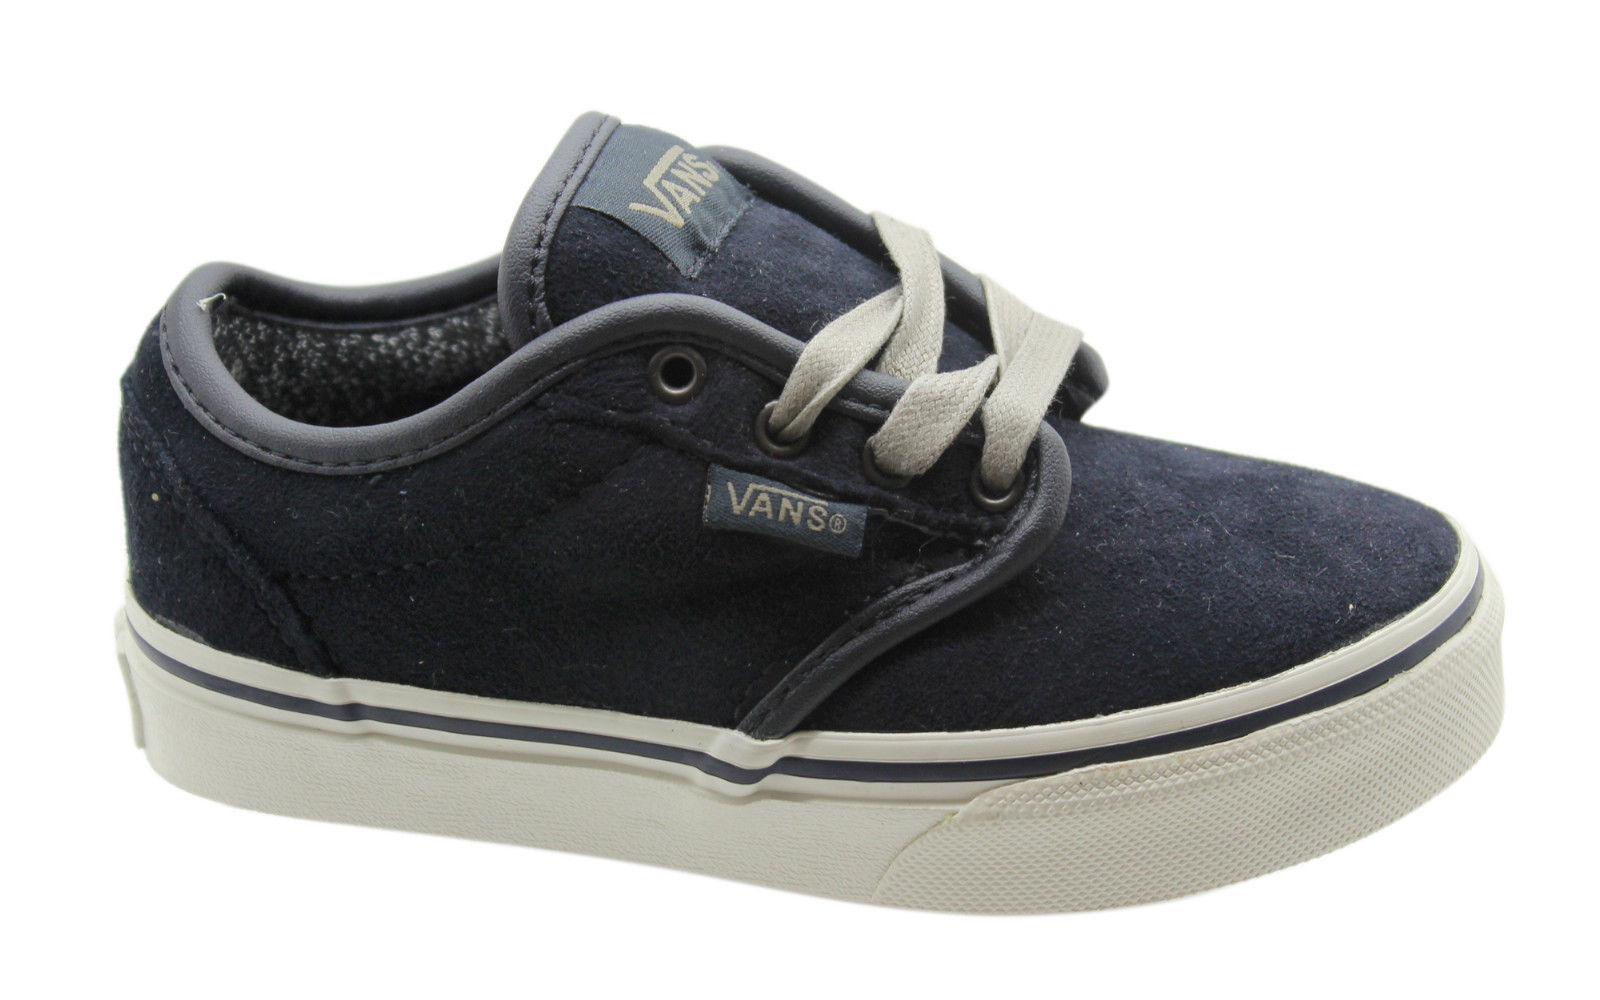 06a3ff47fa Vans Off The Wall Atwood Suede MTE Kids Junior Lace Up Canvas ...